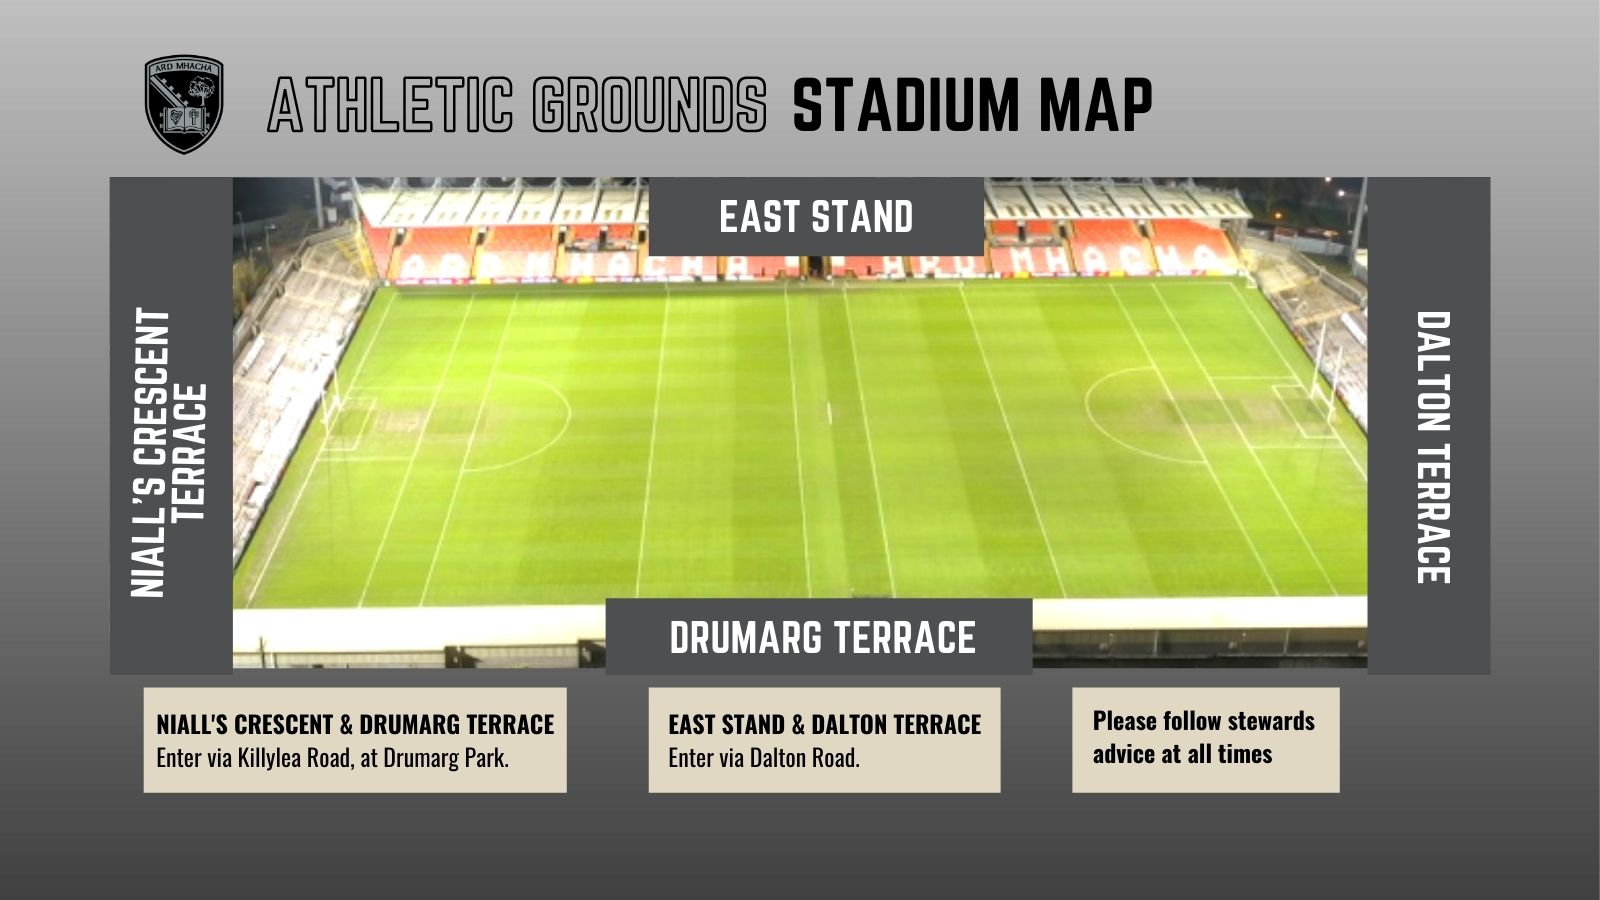 Link to Spectator Information for attending Ulster GAA games post